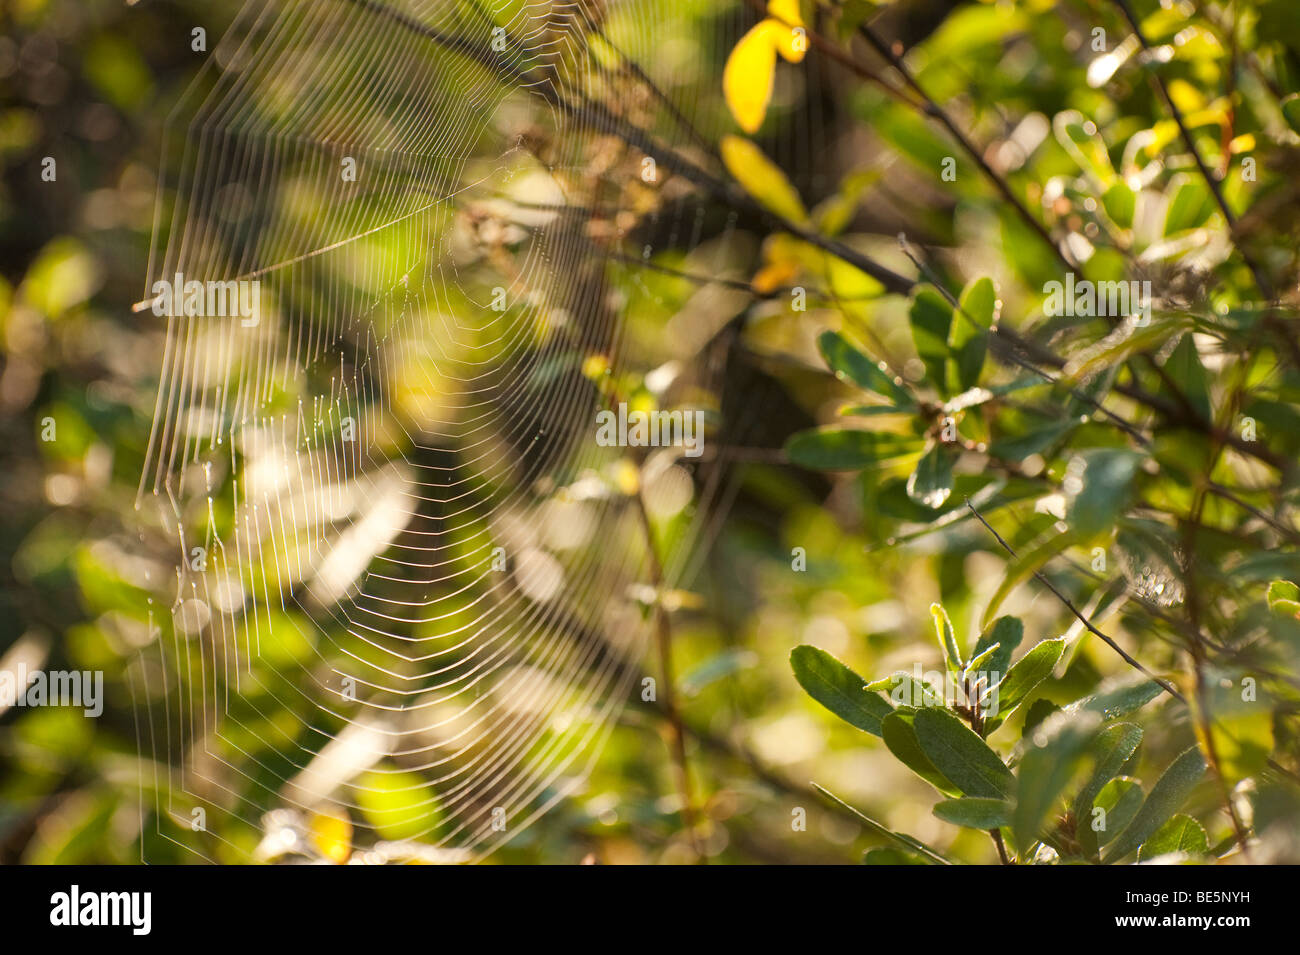 A SPIDER WEB LIT UP BY THE MORNING SUN - Stock Image